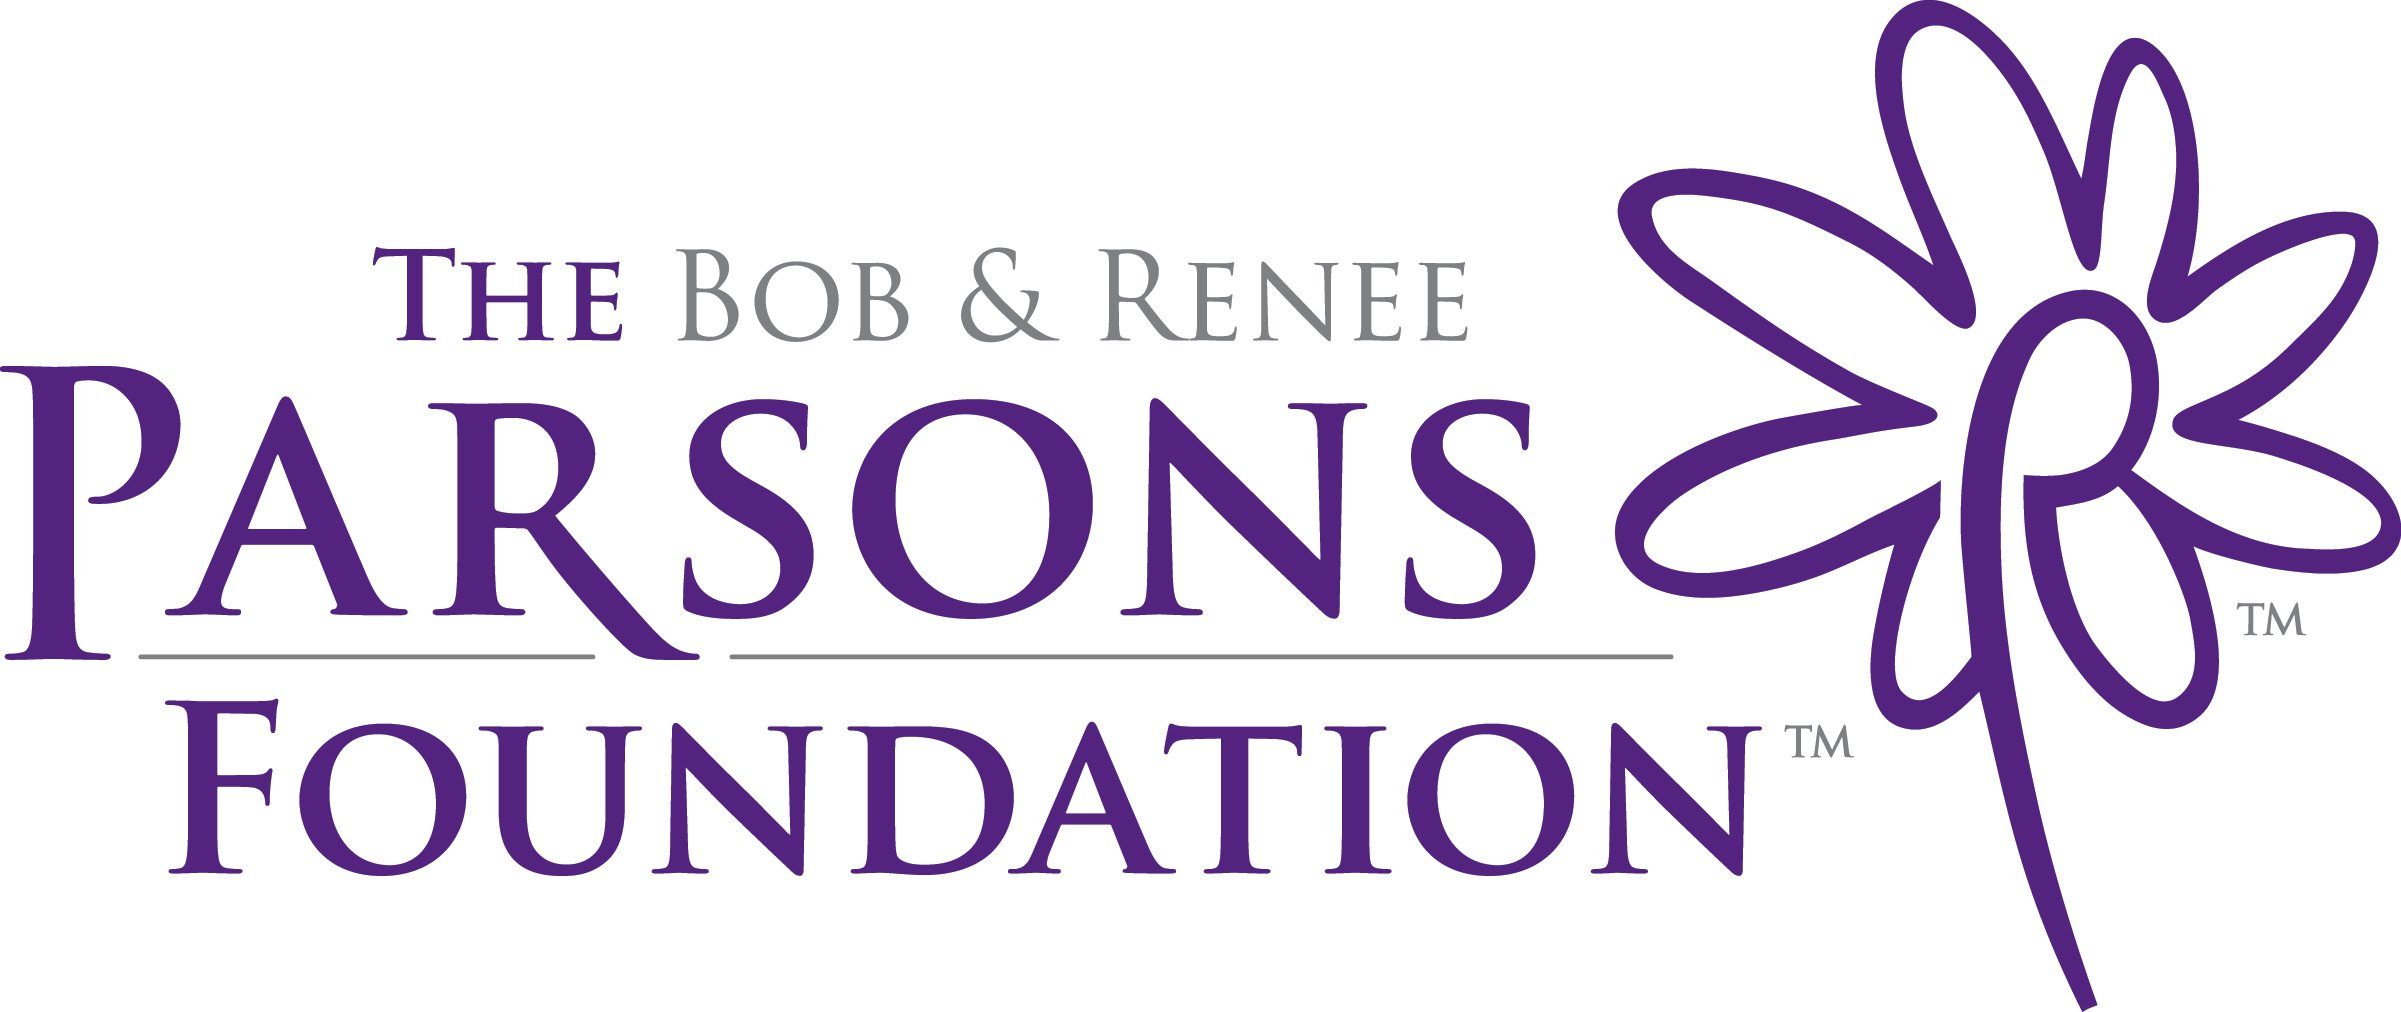 The Bob & Renee Parsons Foundation logo.jpg